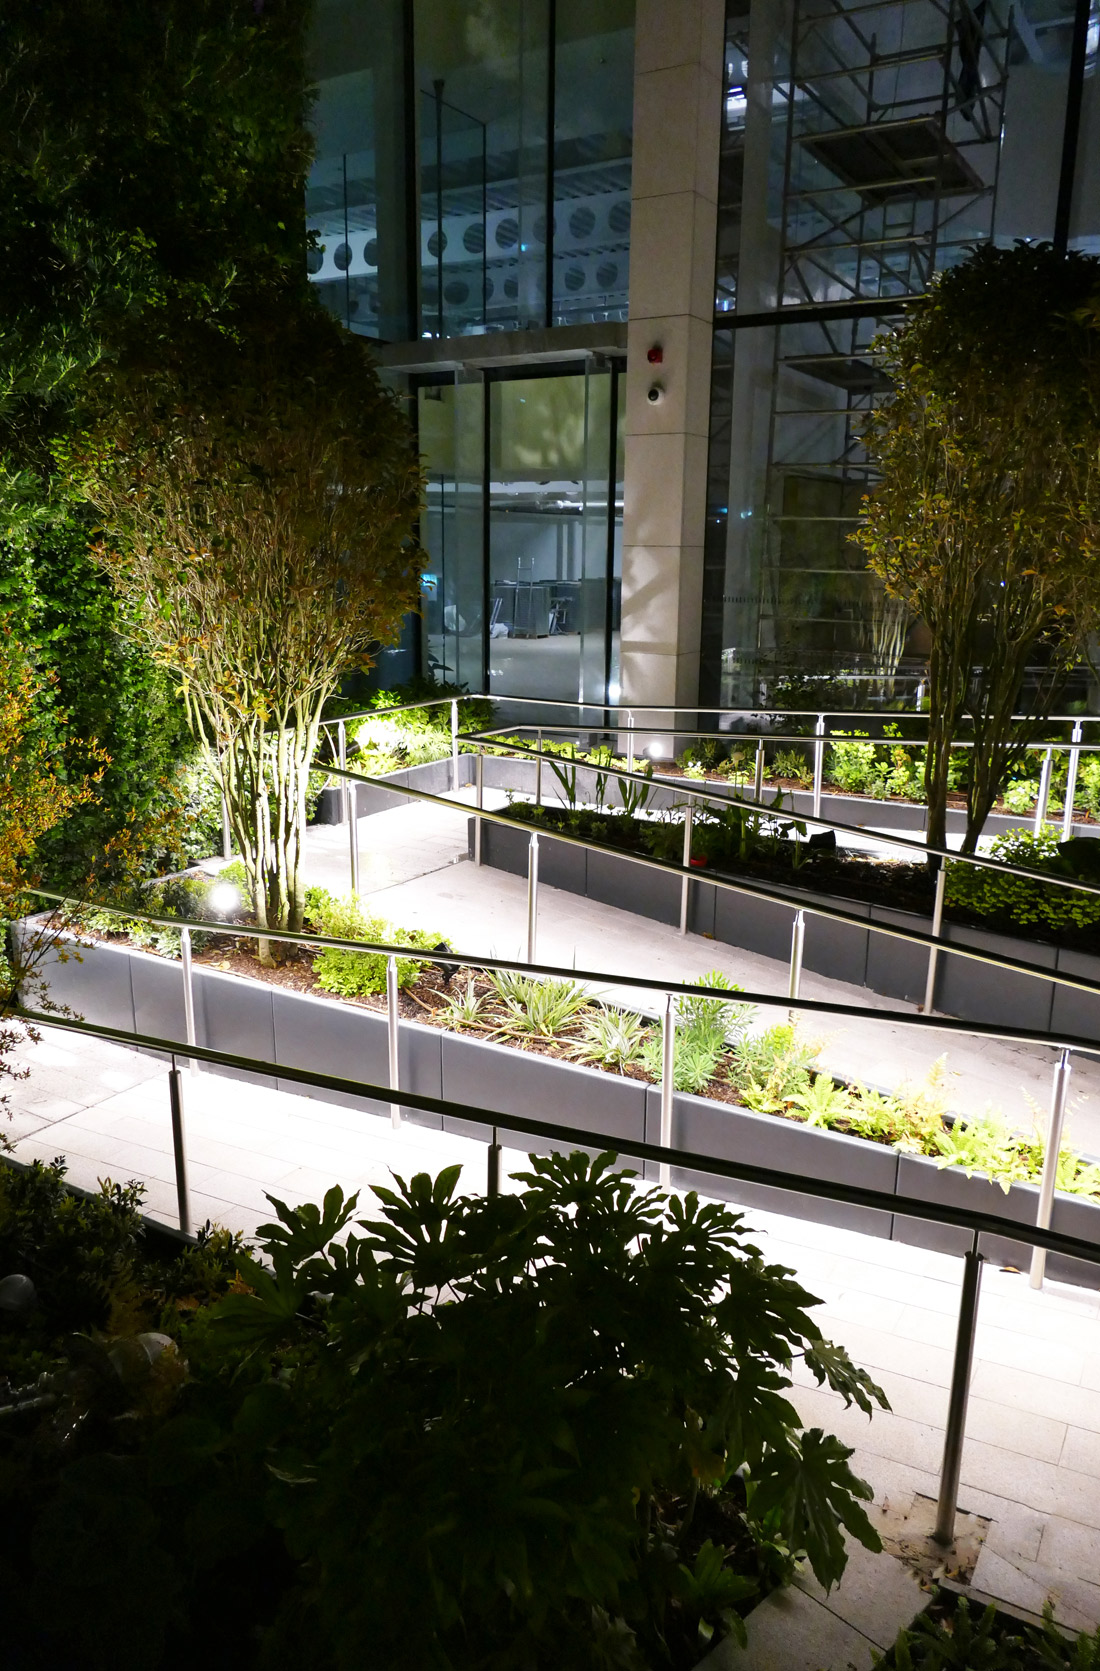 Liniled Handrail safe lighting solution for wheelchair access